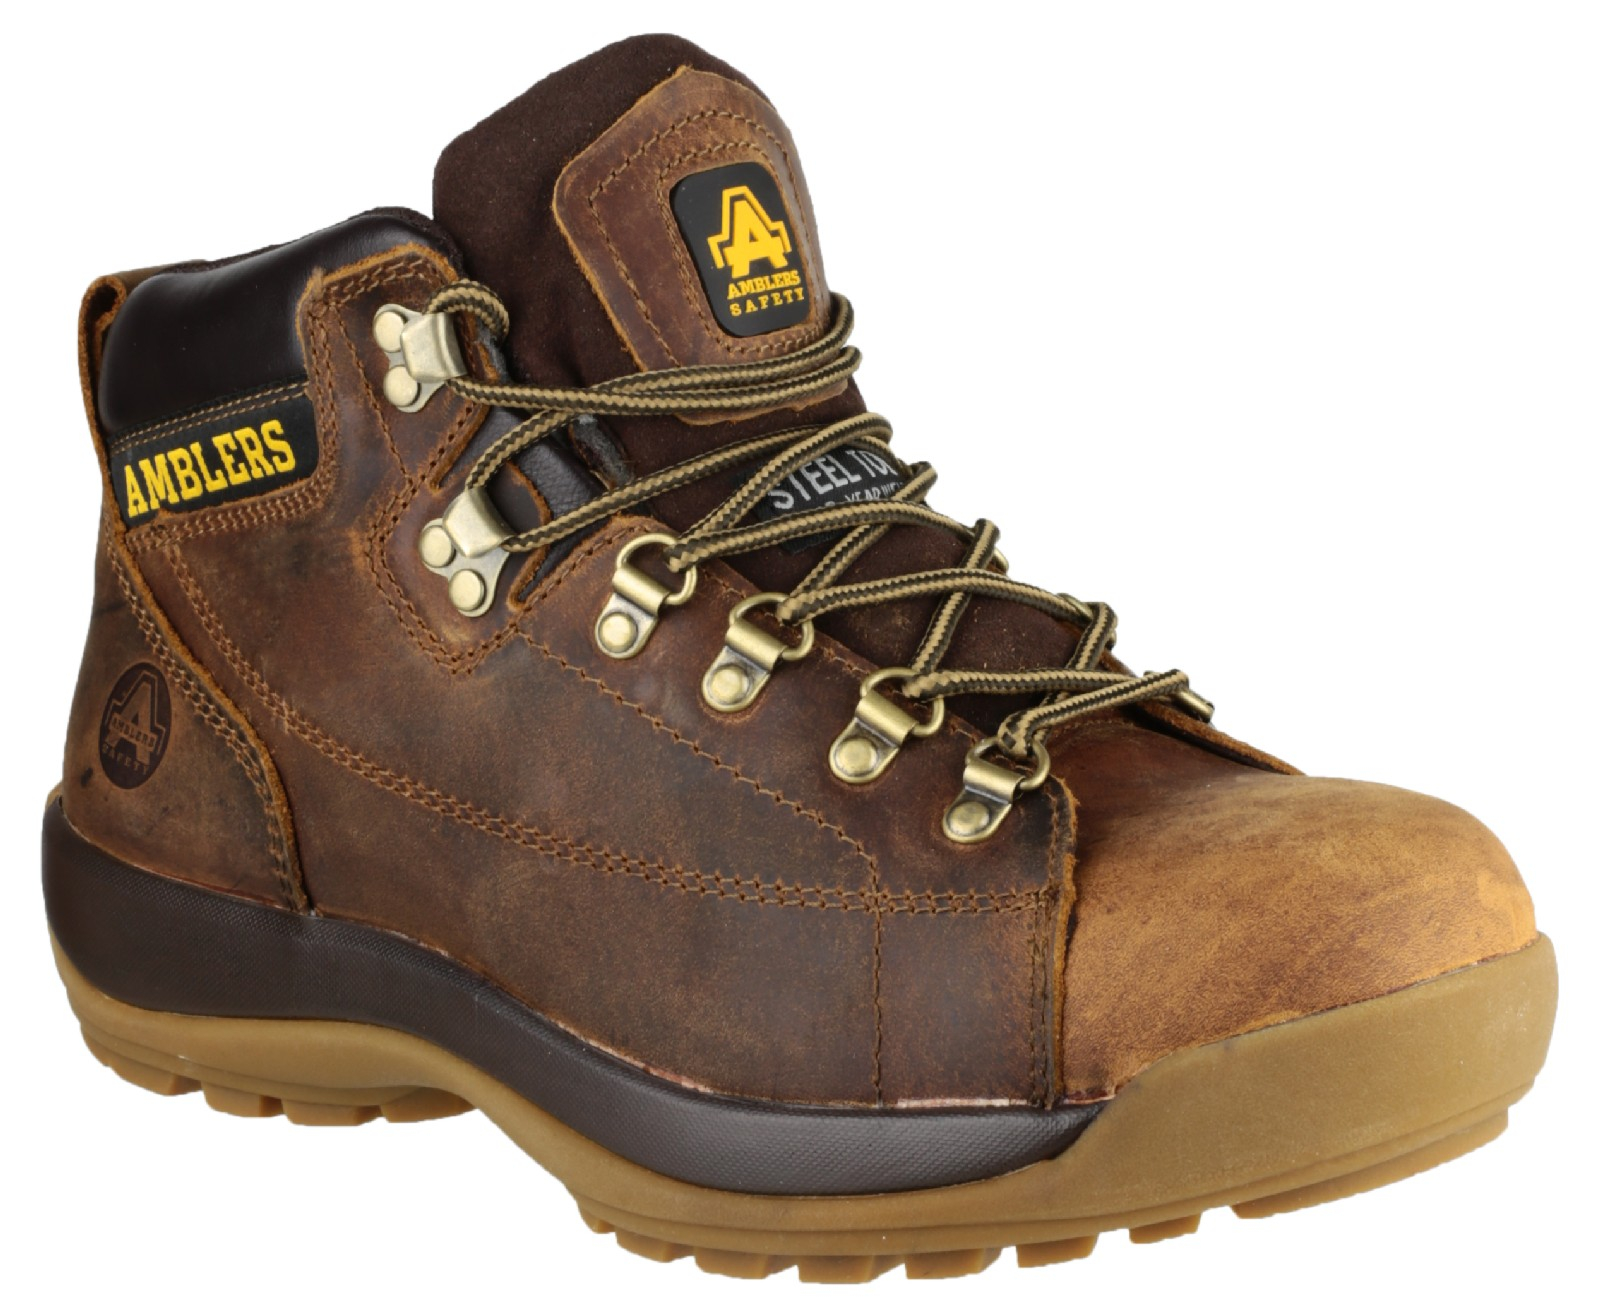 FS126 Safety Boots